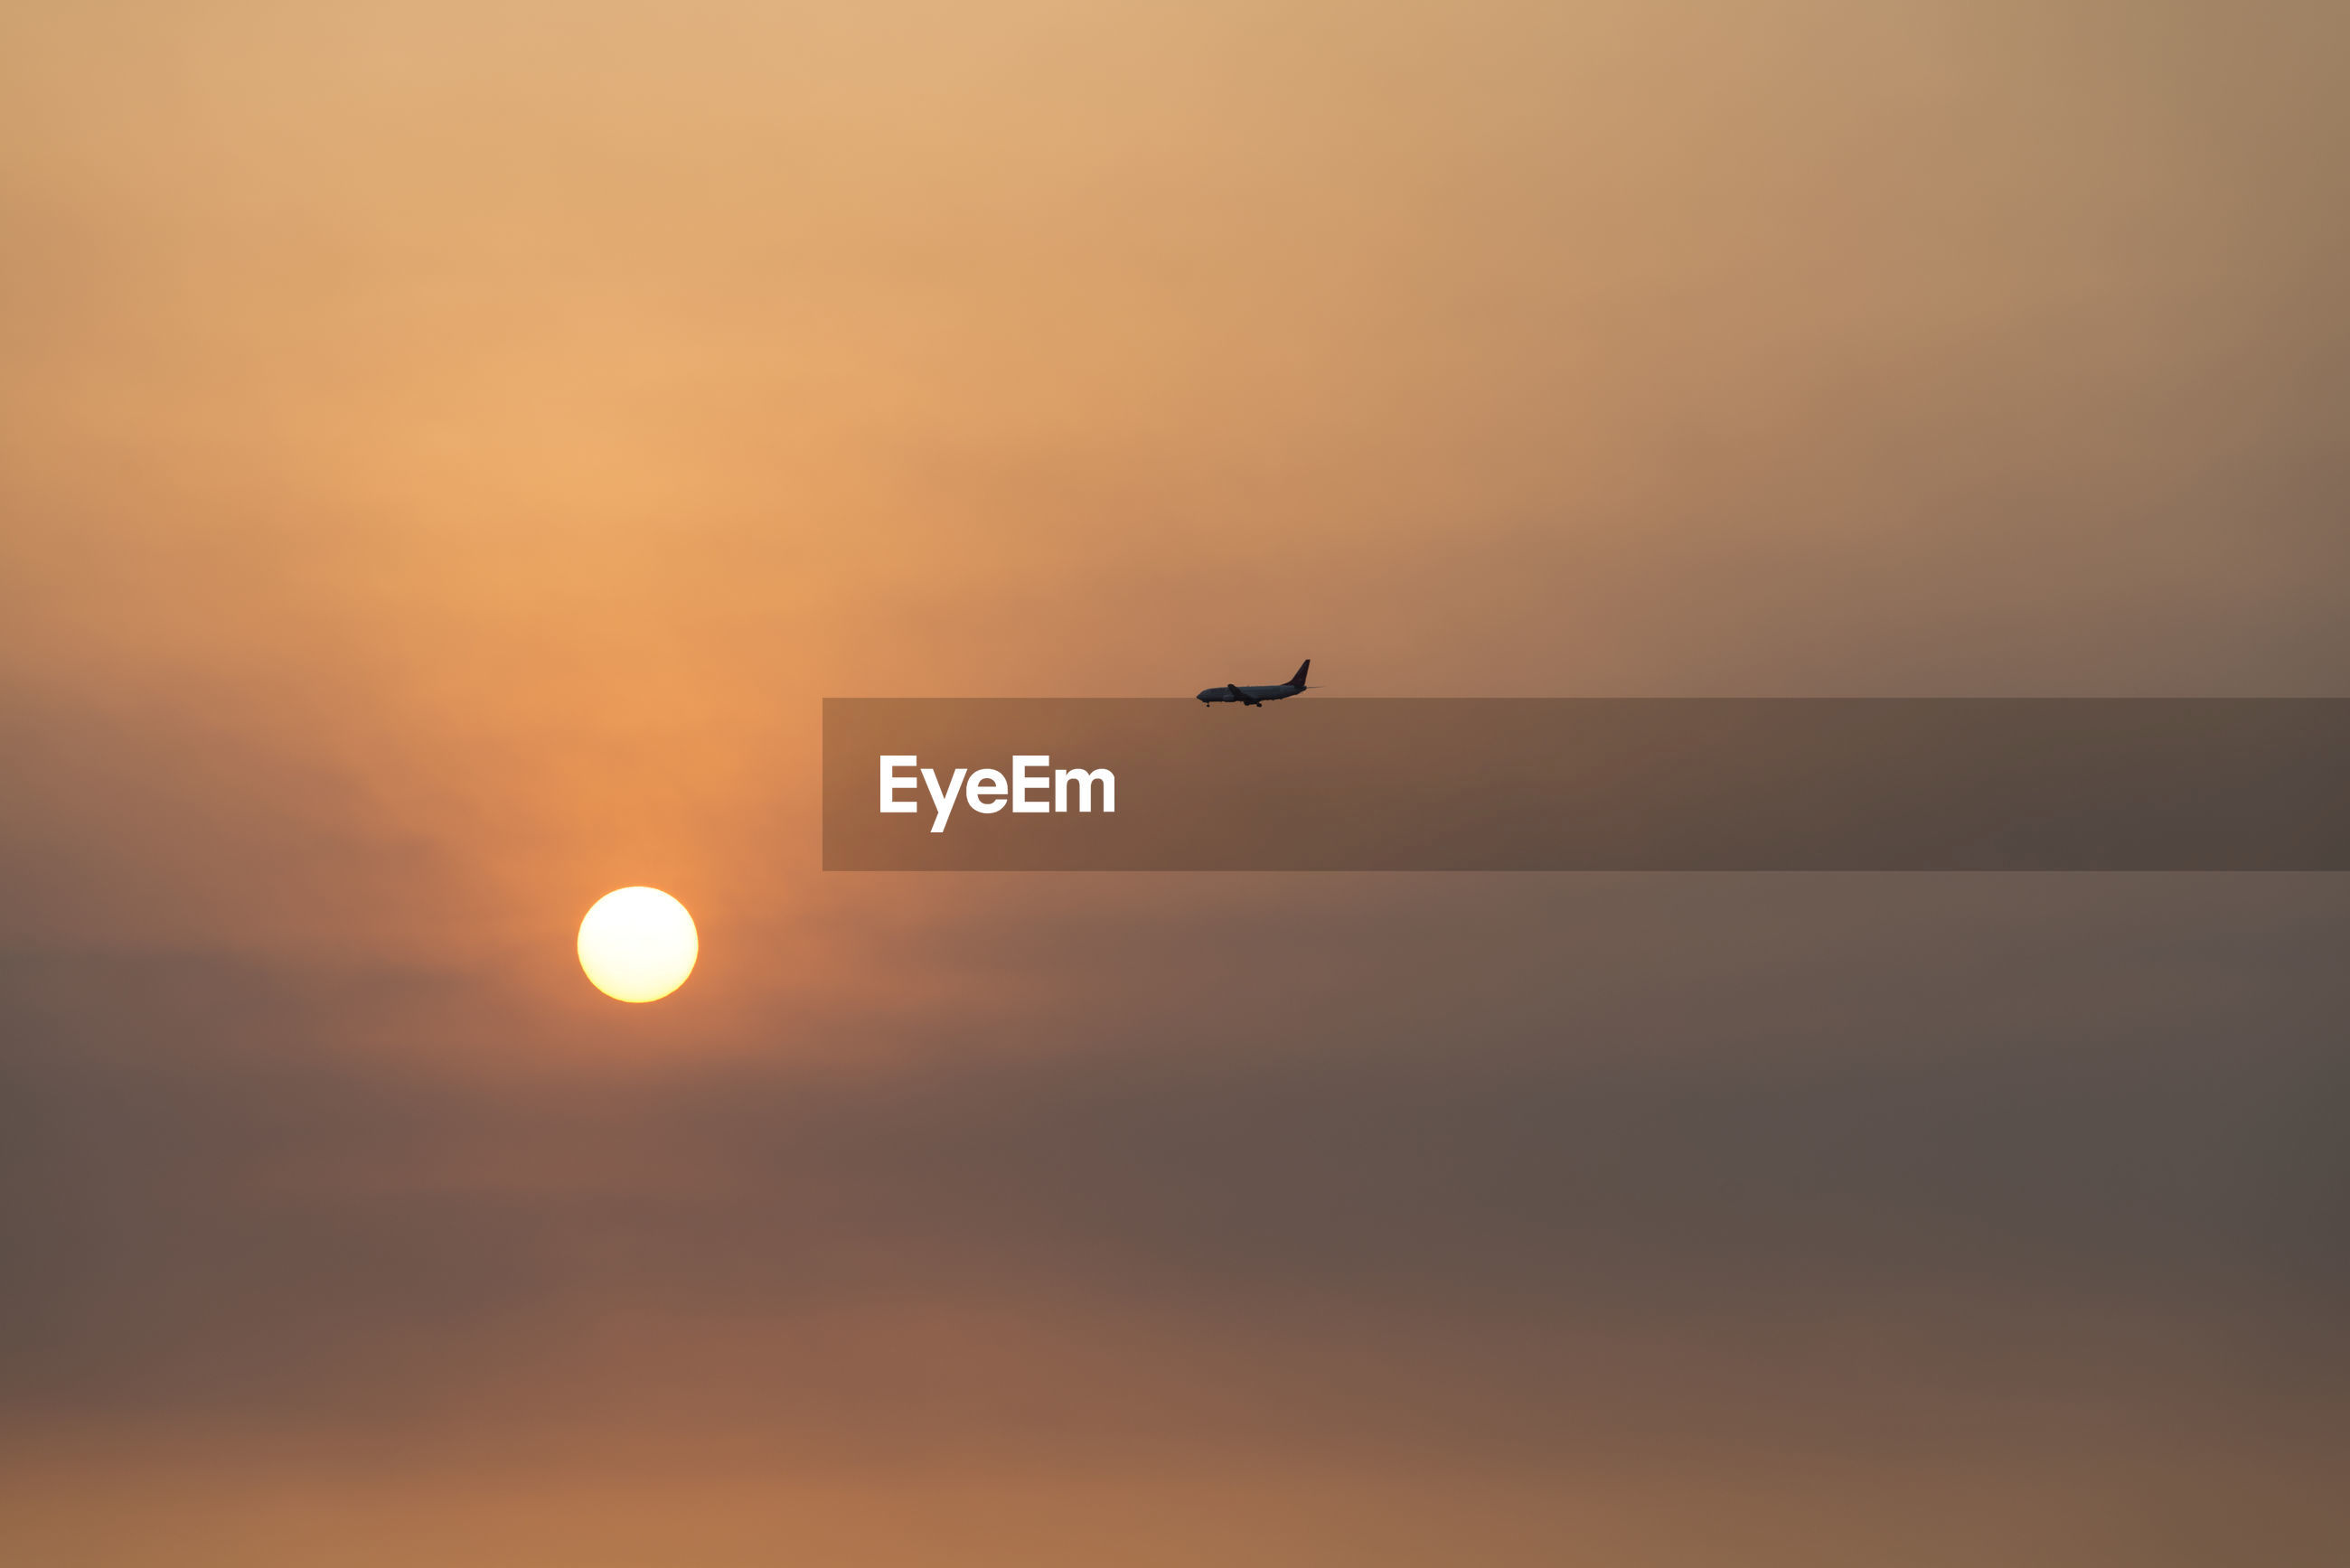 Distant view of airplane flying in sky during sunset